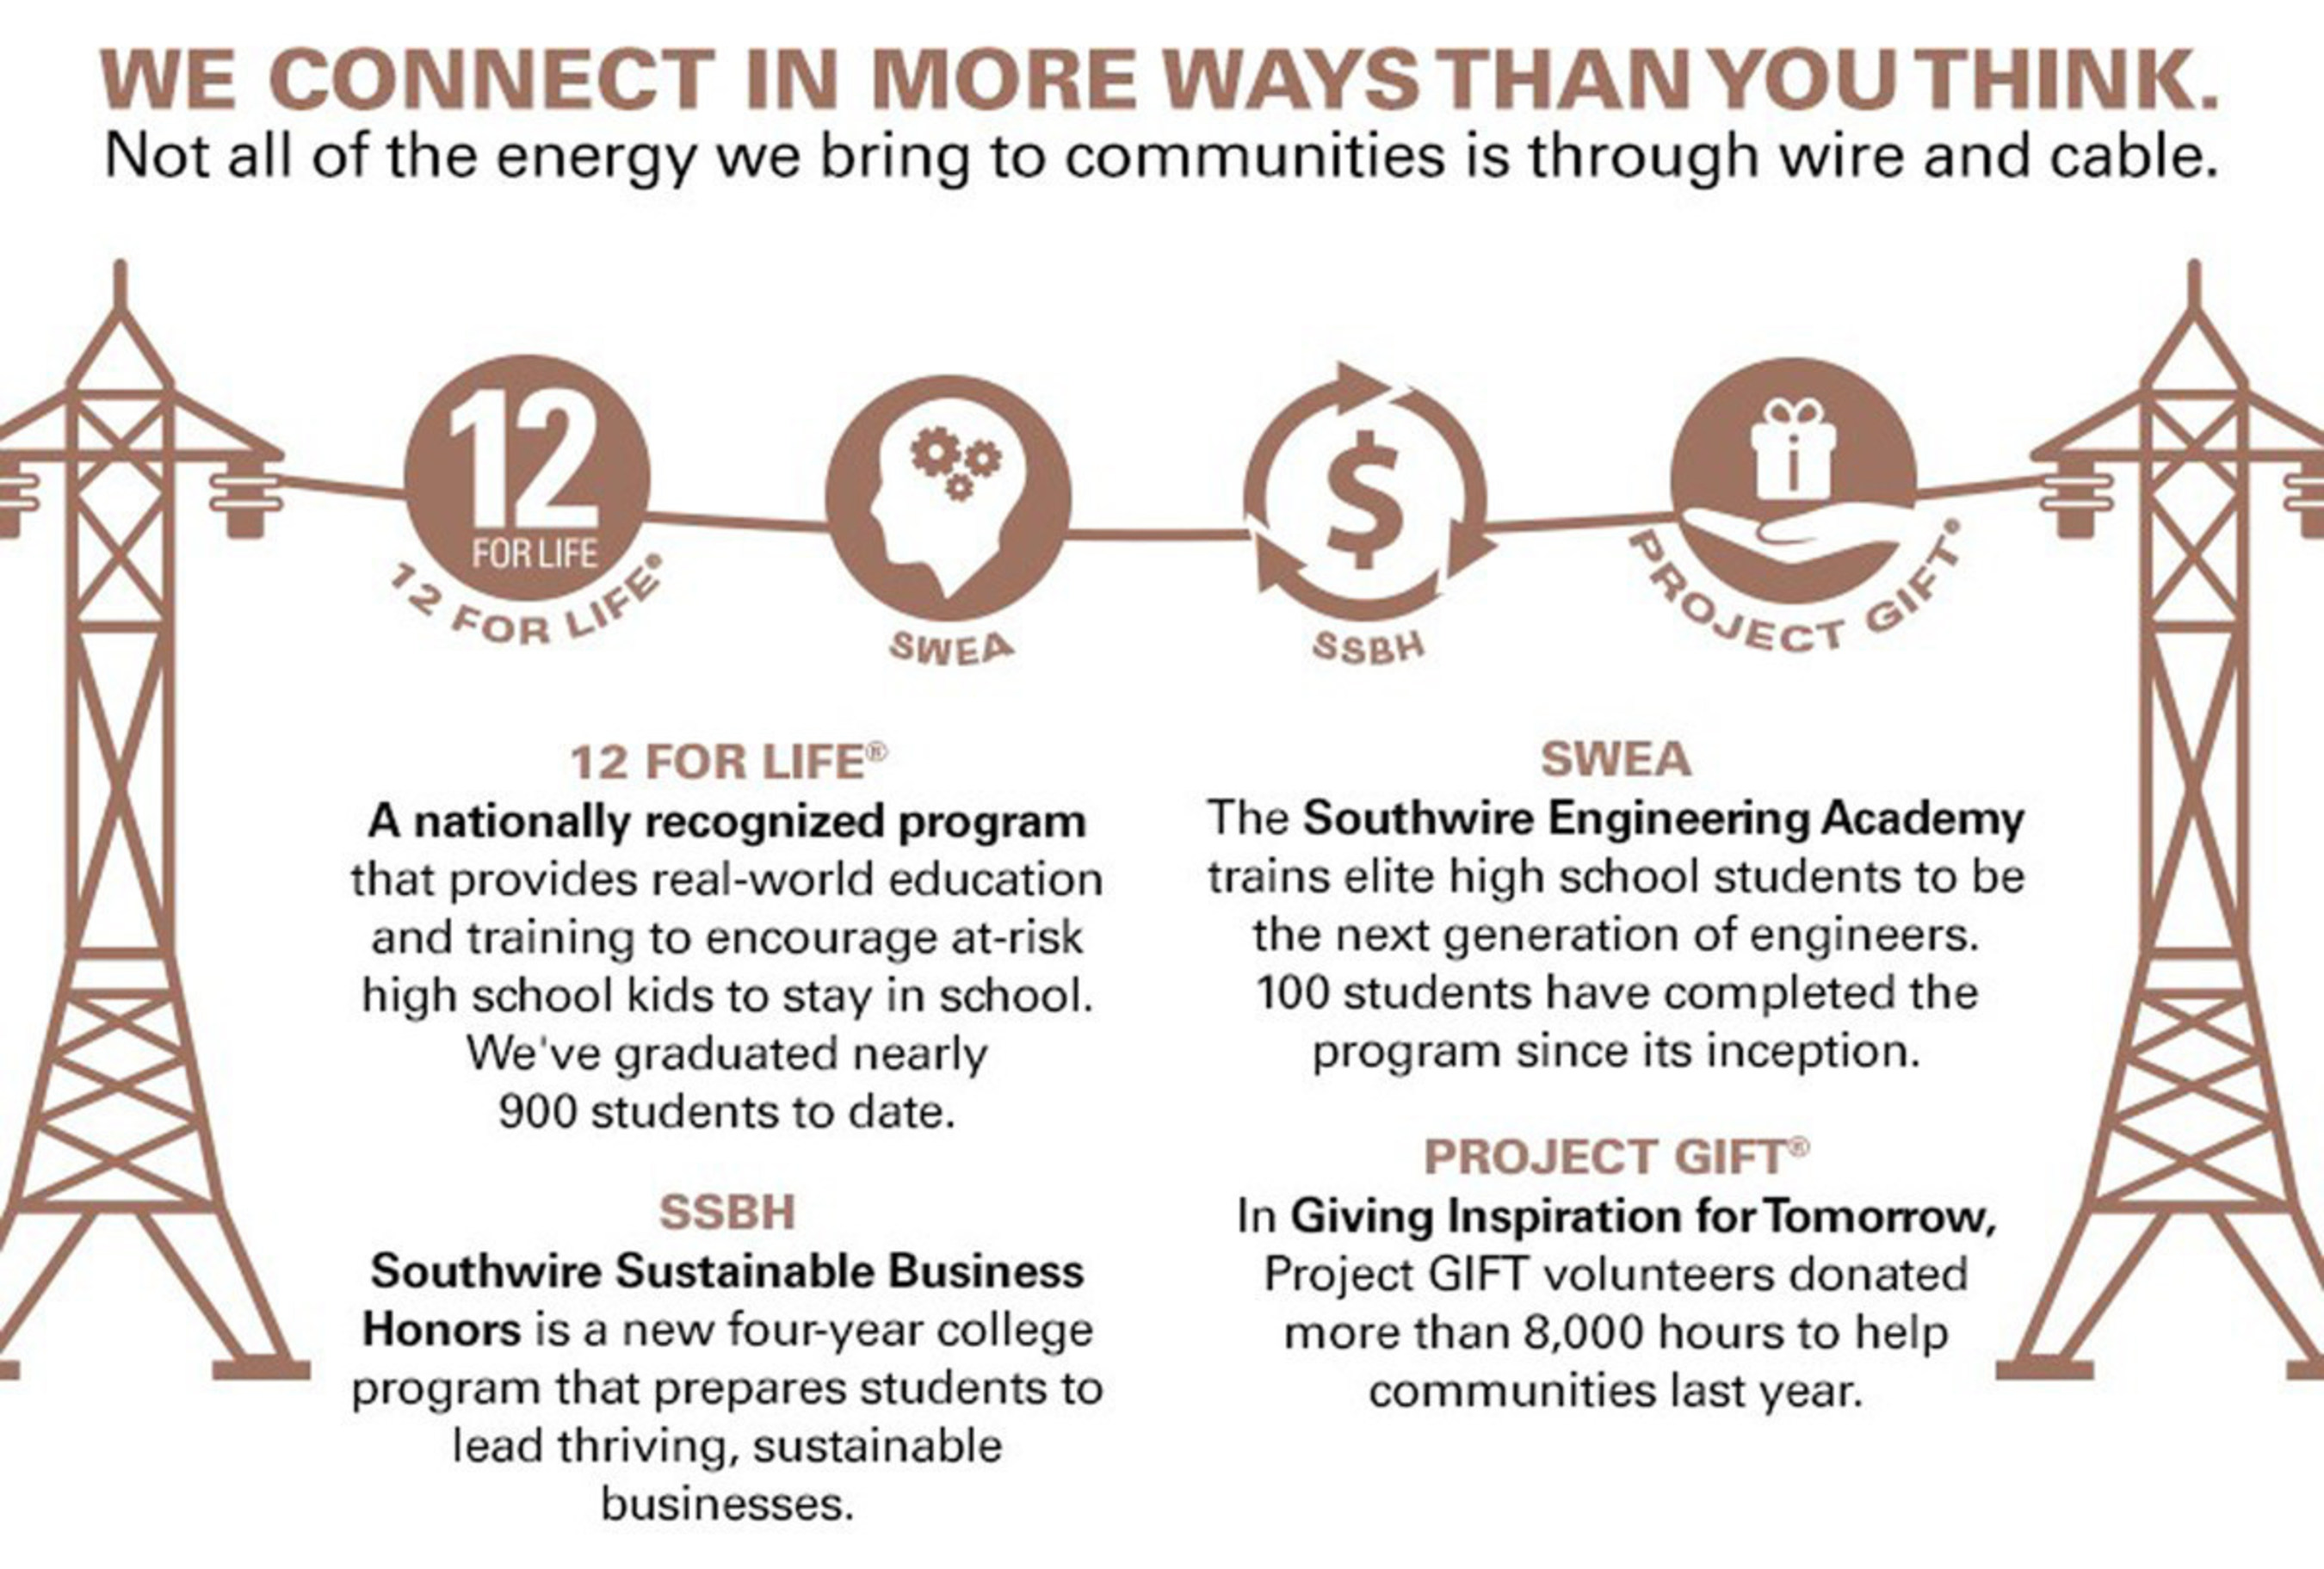 Southwire Company's Energy Division connects with the community in more ways than you might think. ...